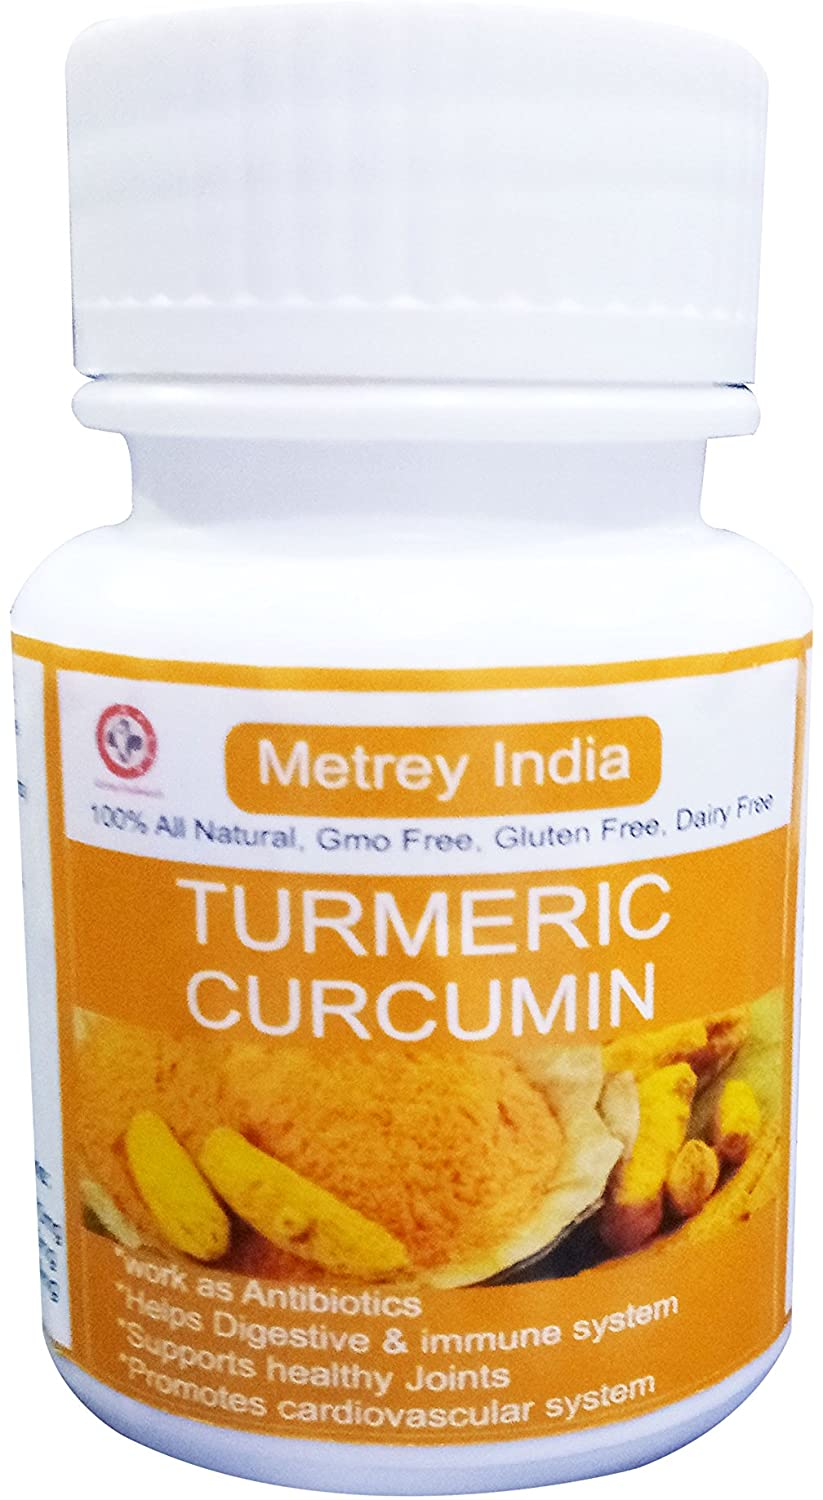 METREY Turmeric Curcumin 500mg with Curcuminoids & BioPerine Black Pepper Extract, Advanced Absorption, Cardiovascular & Healthy Joints Support, 60 Vegetarian Capsules